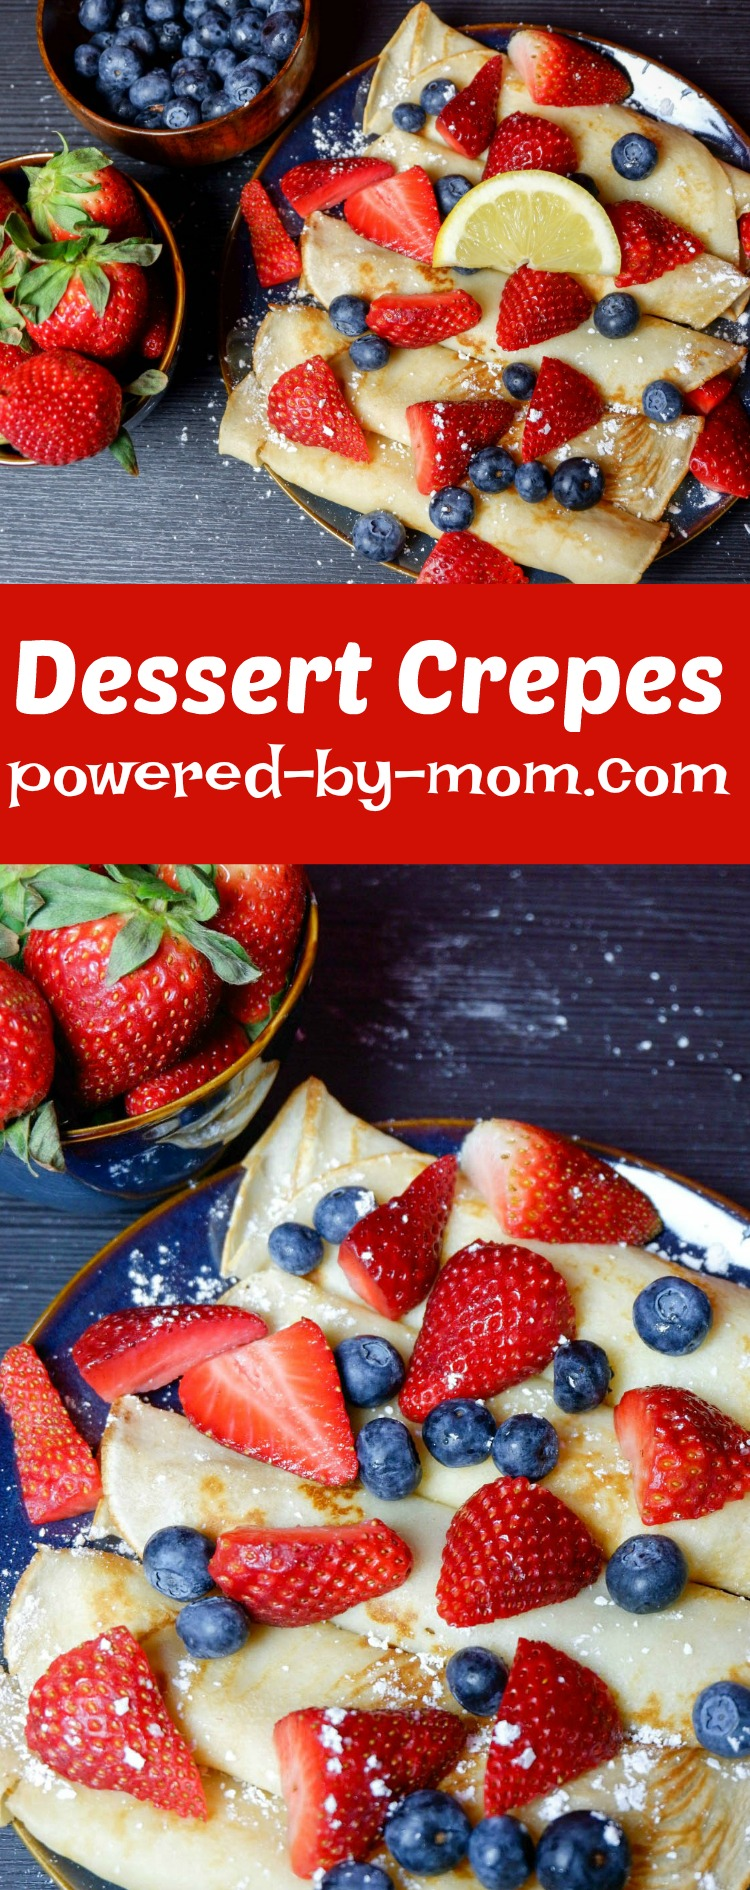 Crepes are delicious to serve for dessert, breakfast or special occasions. Even dinner for savory crepes! Perfect for special occasions like Canada Day!